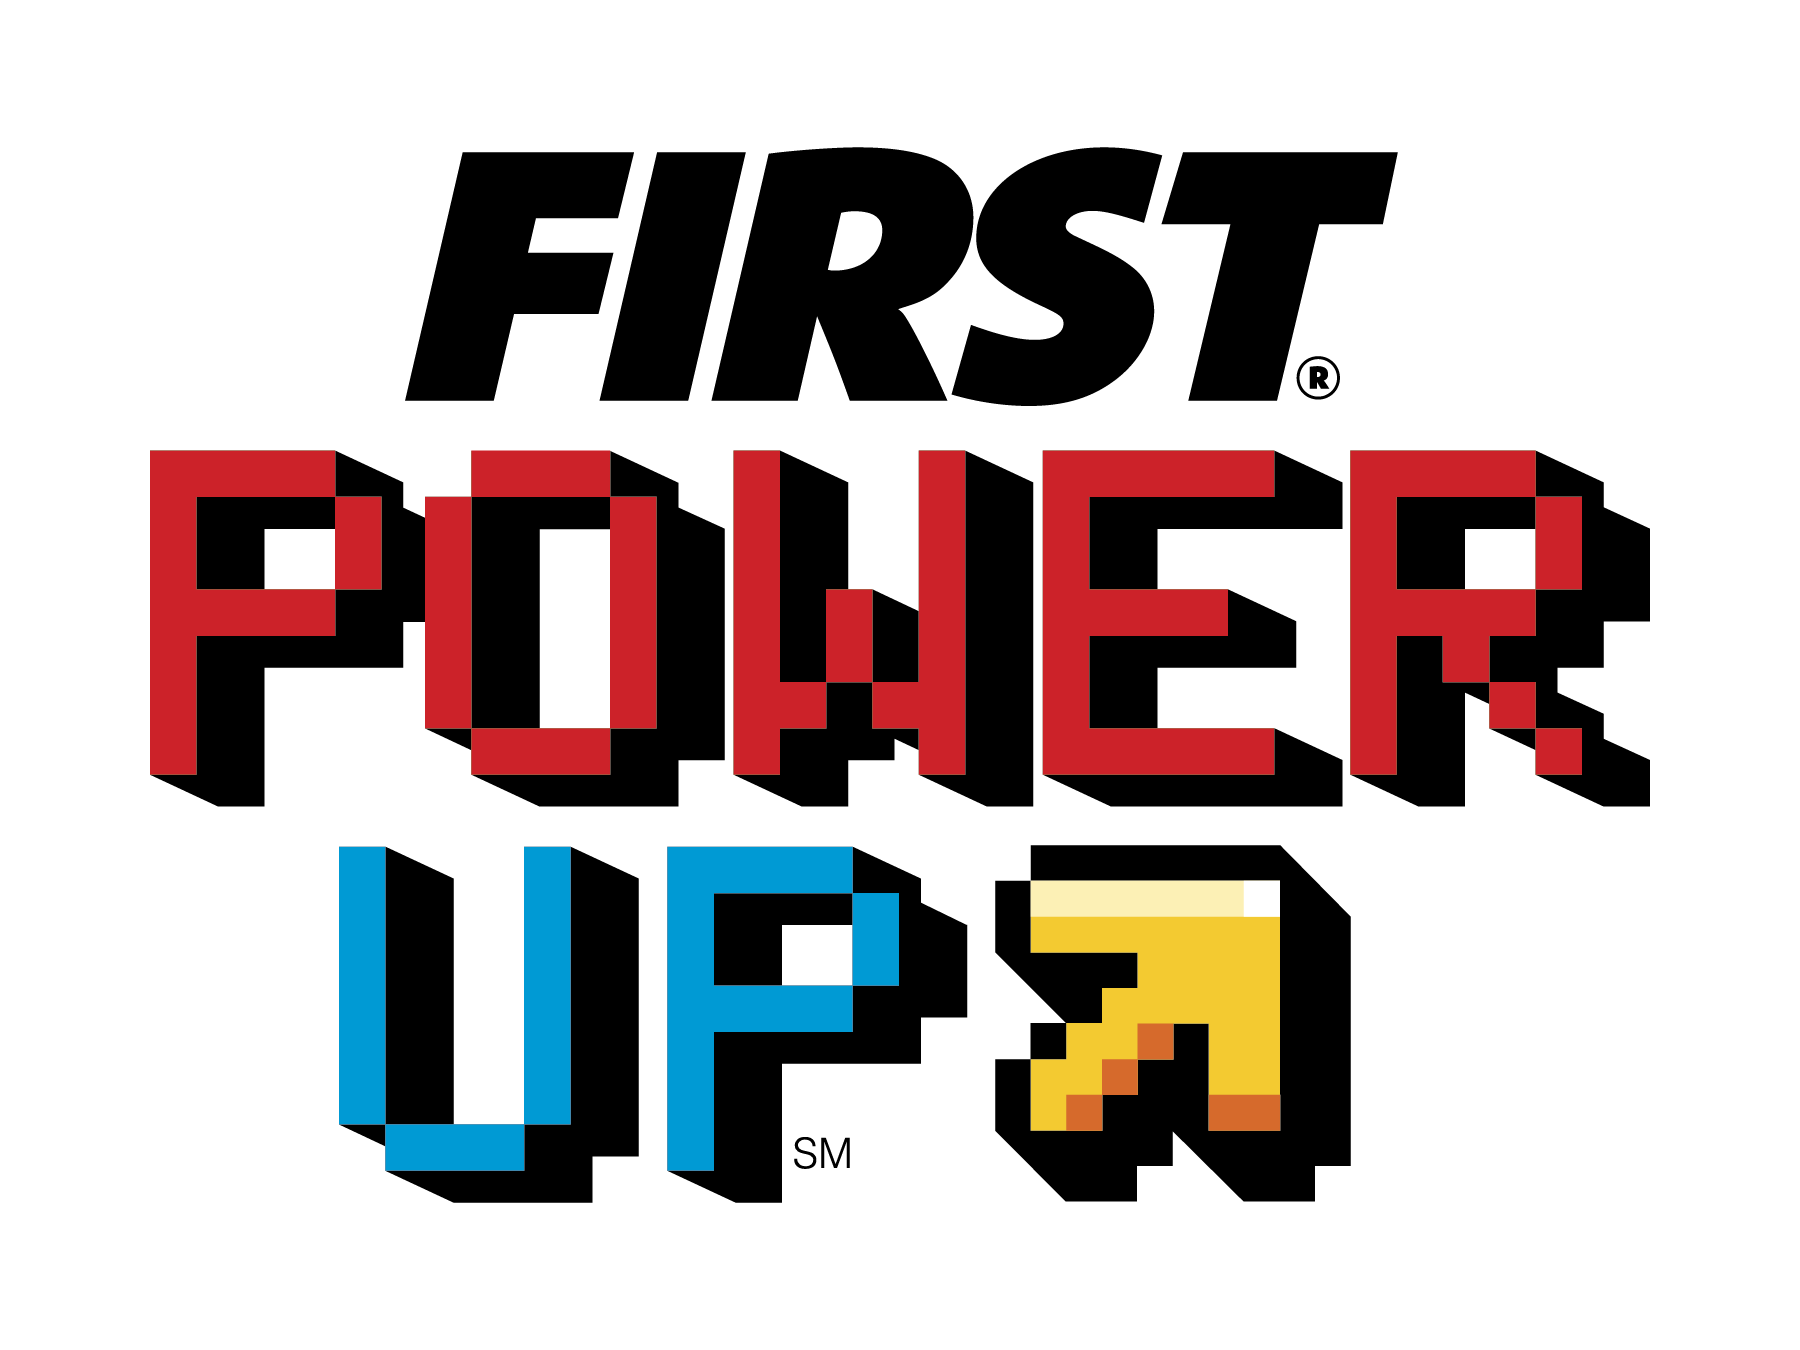 Power up png. File first game logo